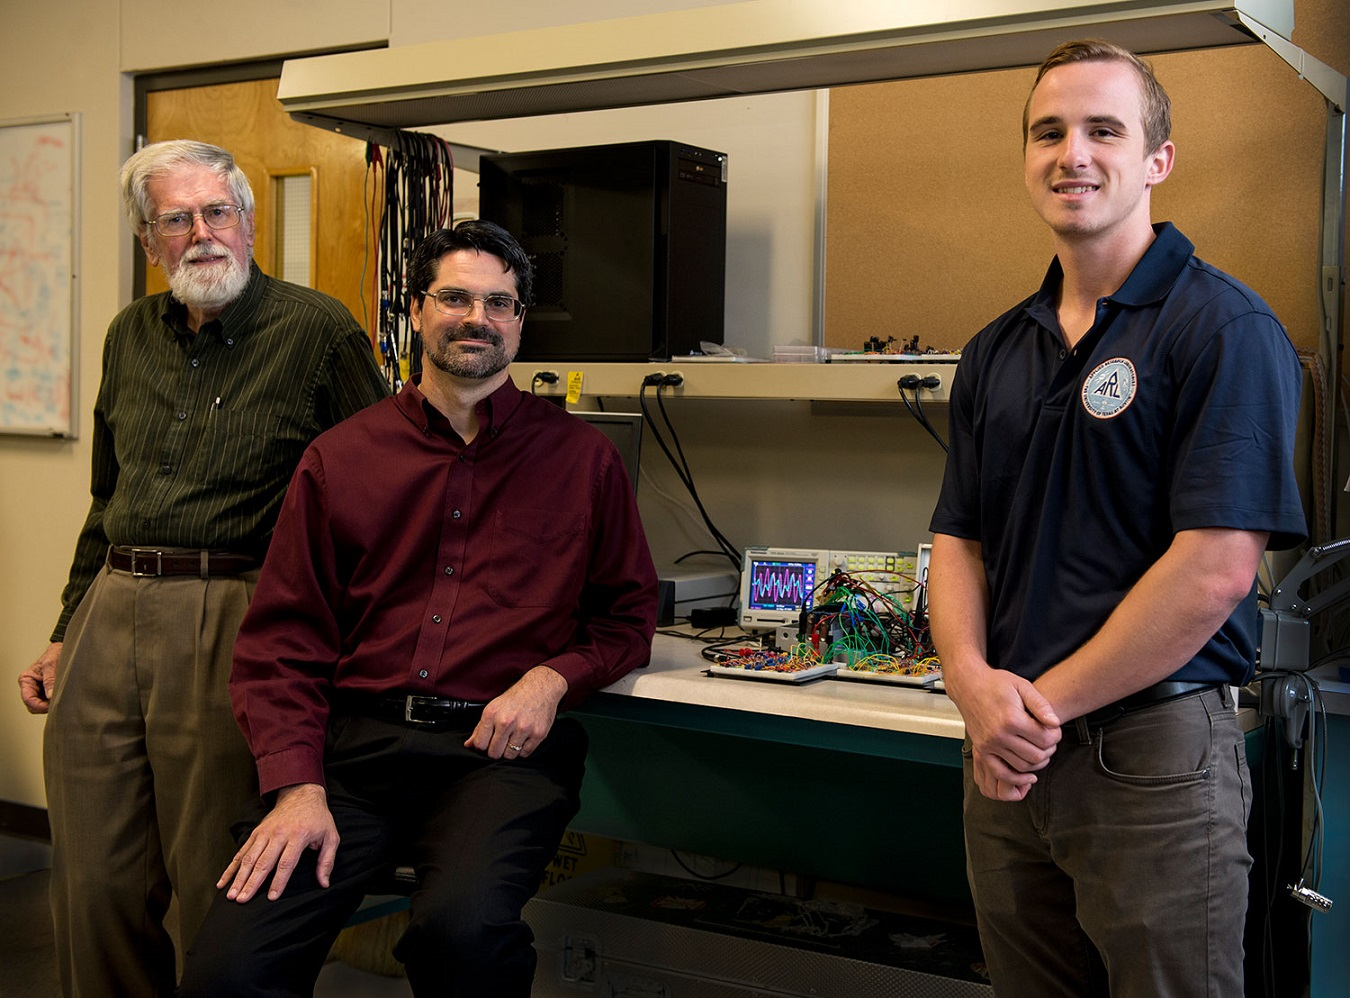 computing in papers quantum research Quantum computing is not just another emerging technology it is a radically different computing paradigm poised to launch a new age of human discovery we have winners of the ibm qiskit developer challenge announcing the winners of the ibm qiskit developer challenge.